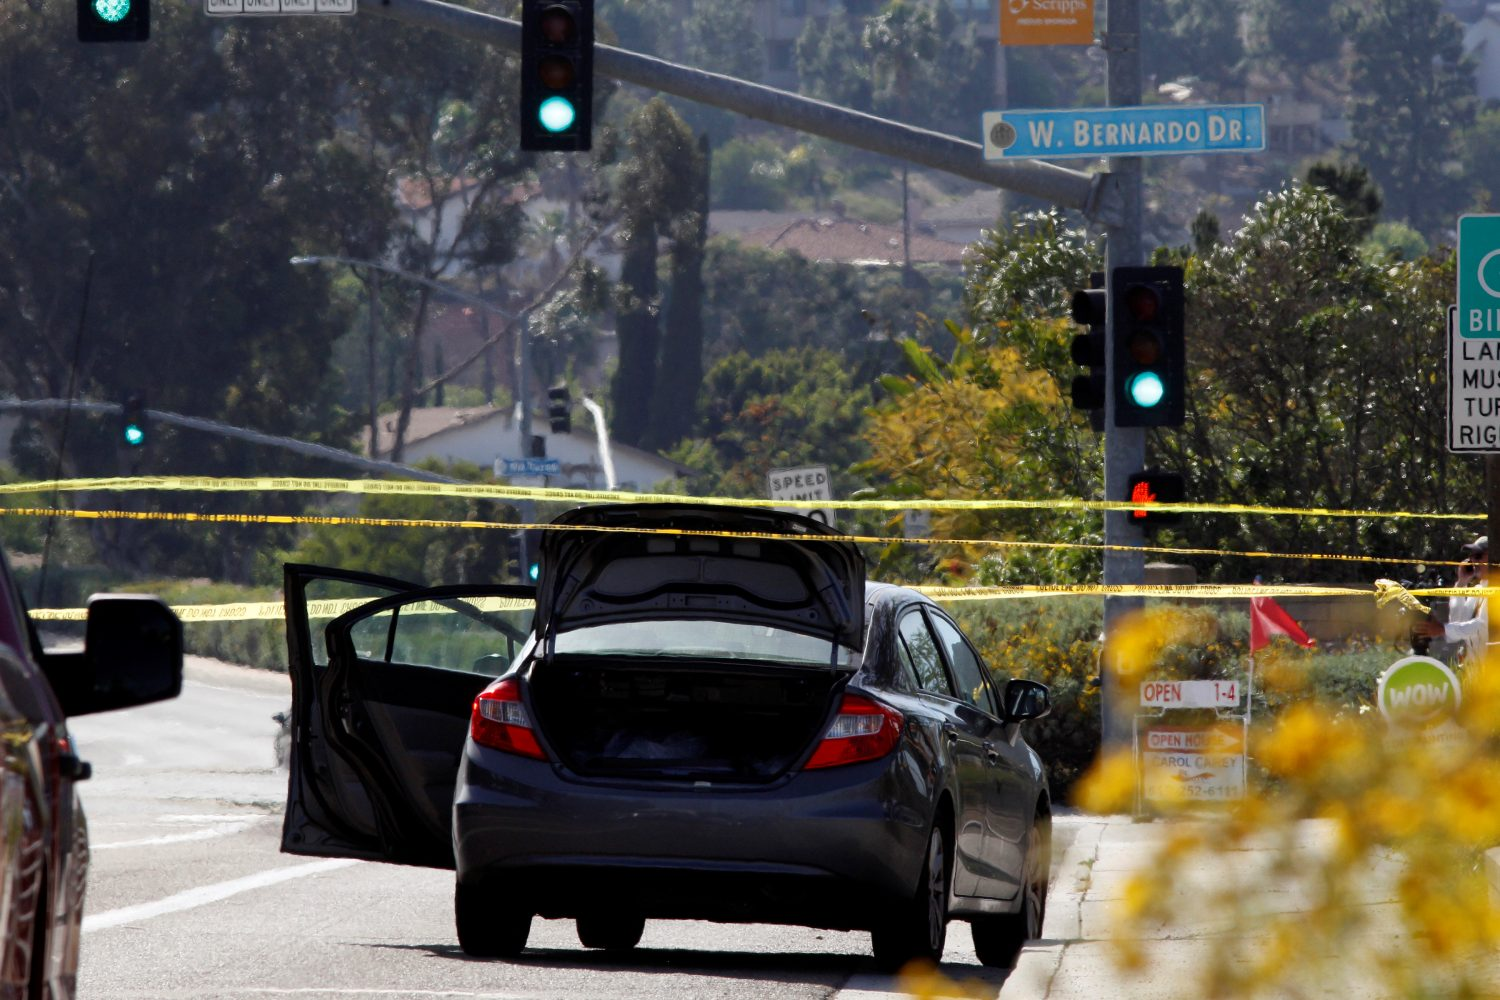 A car, allegedly used by the gunman who killed one at the Congregation Chabad synagogue in Poway, is pictured, few hundred feet from the Interstate 15 off-ramp north of San Diego, California, U.S. April 27, 2019. REUTERS/John Gastaldo